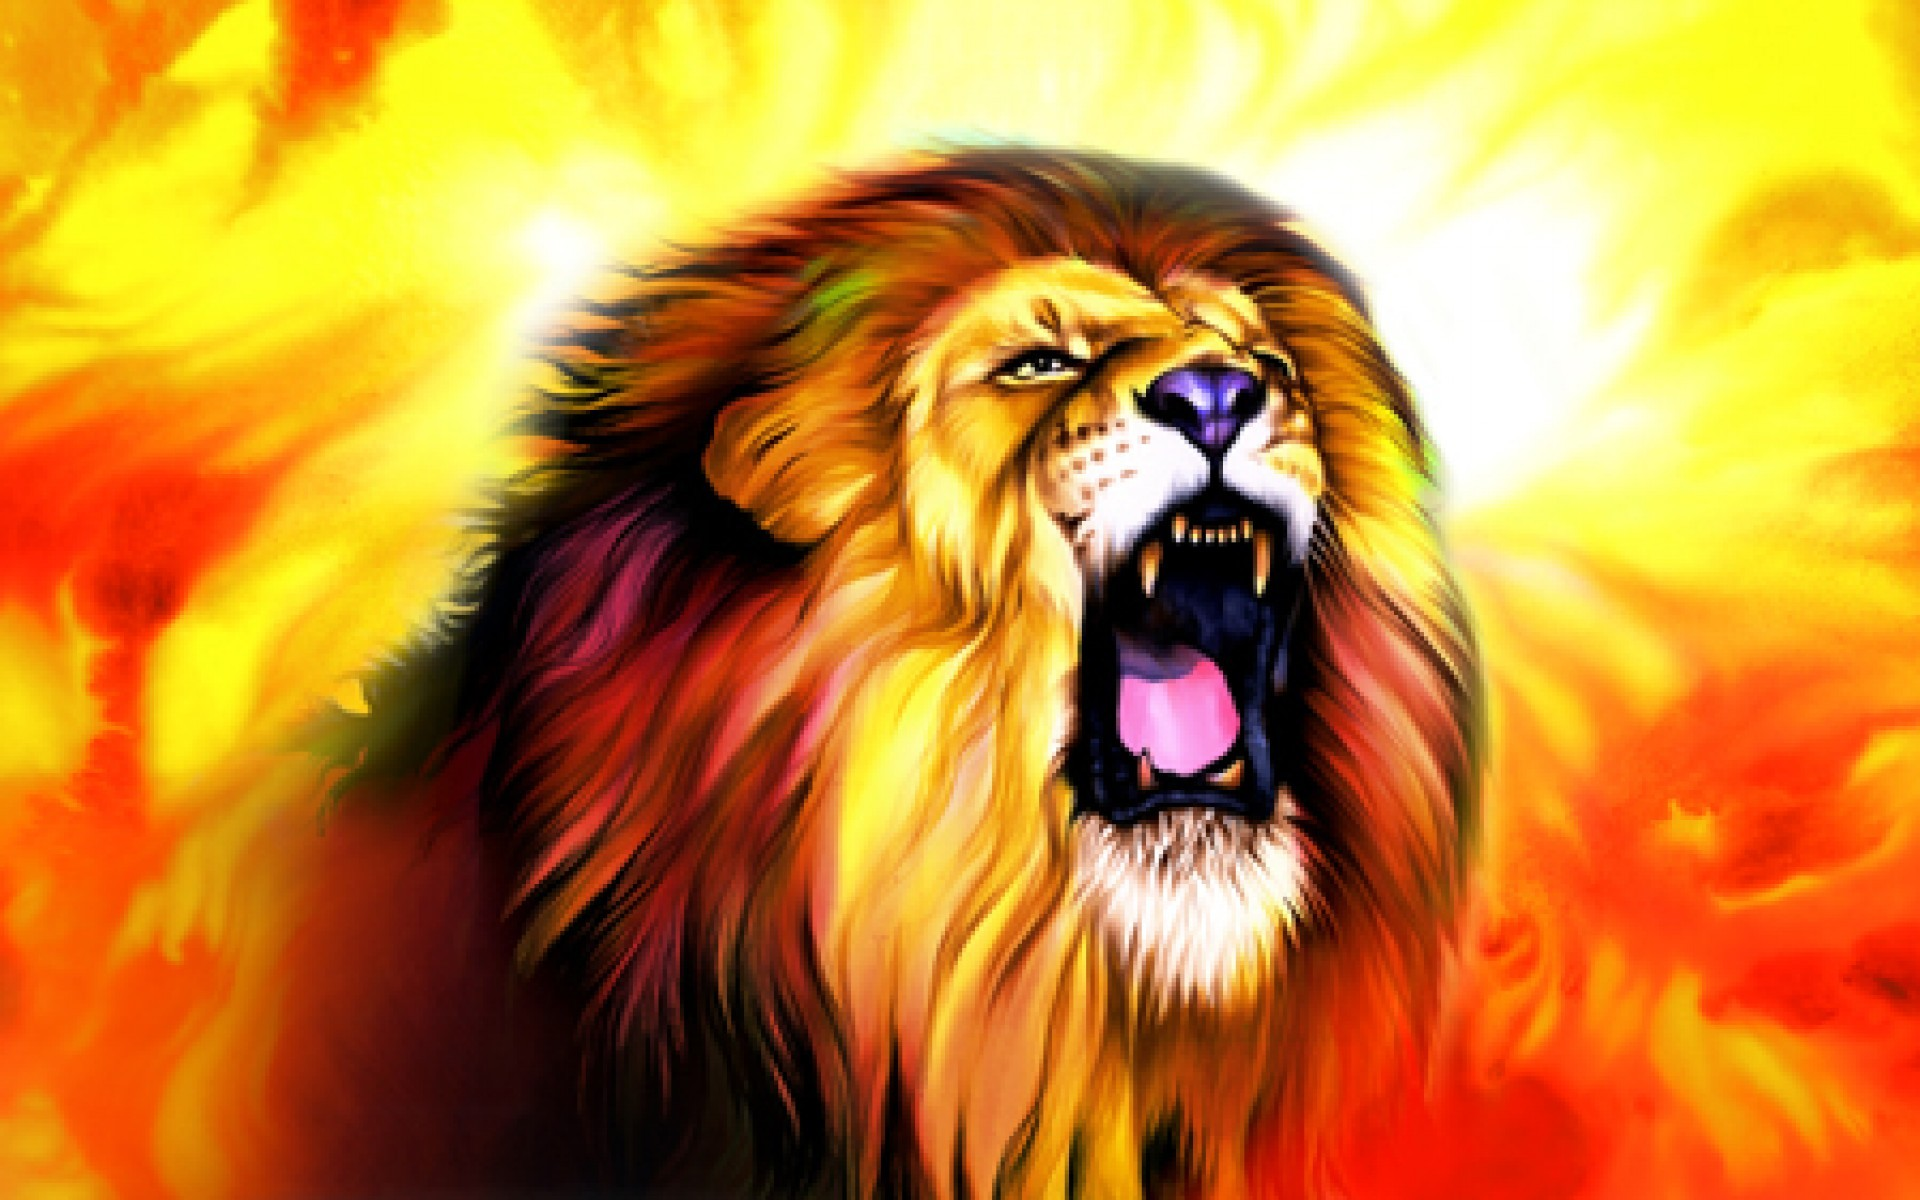 lion wallpaper hd ·① download free amazing hd wallpapers for